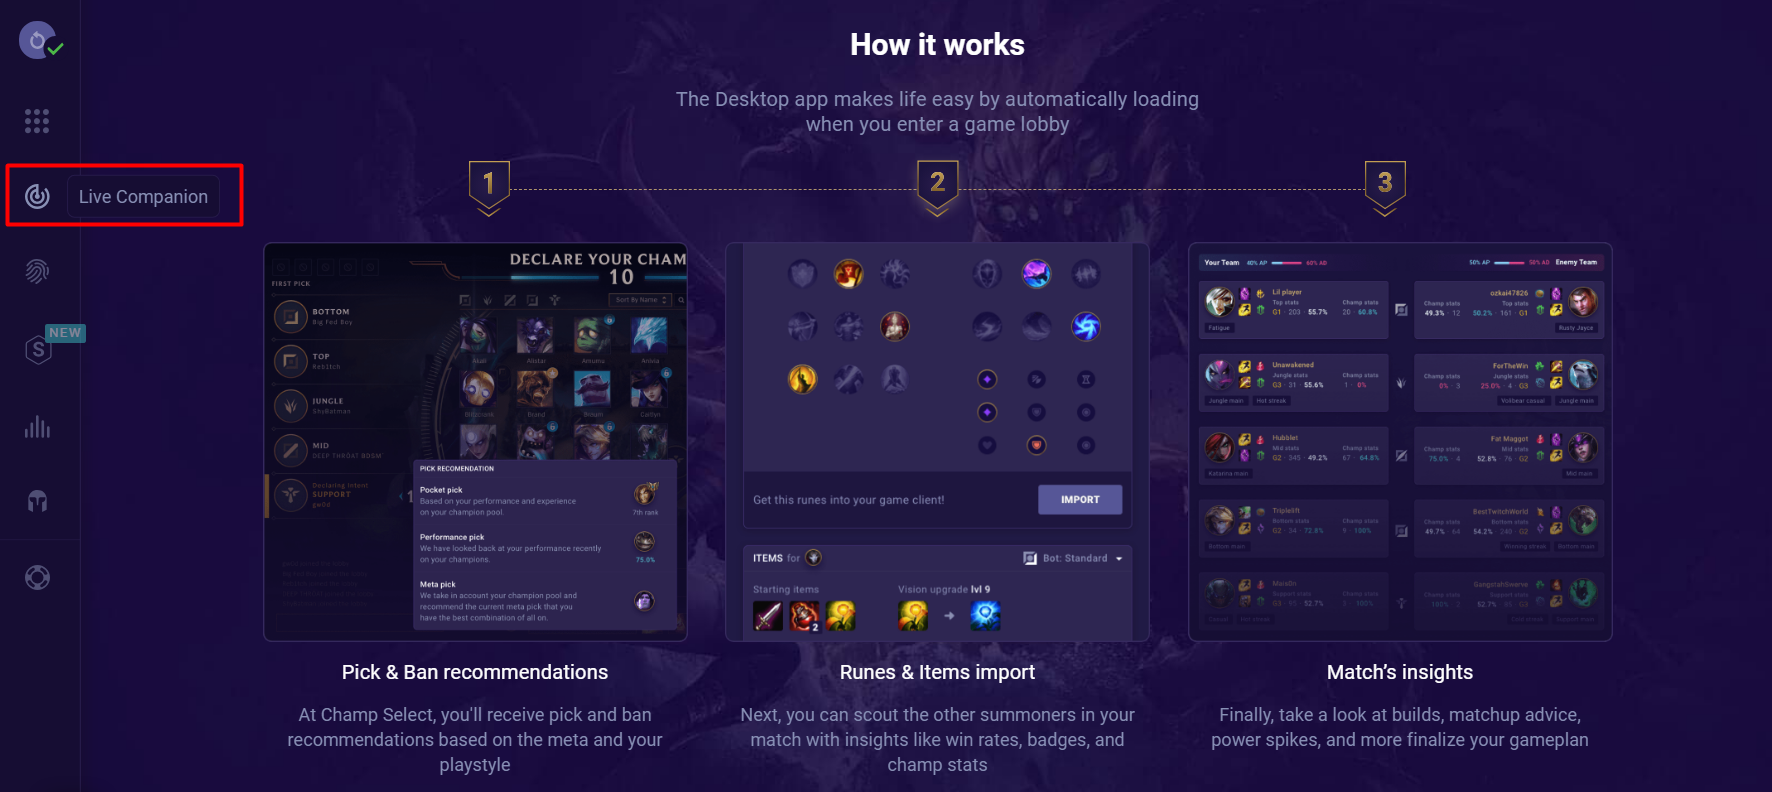 How to Use the Mobalytics Desktop App (Step-by-Step Guide